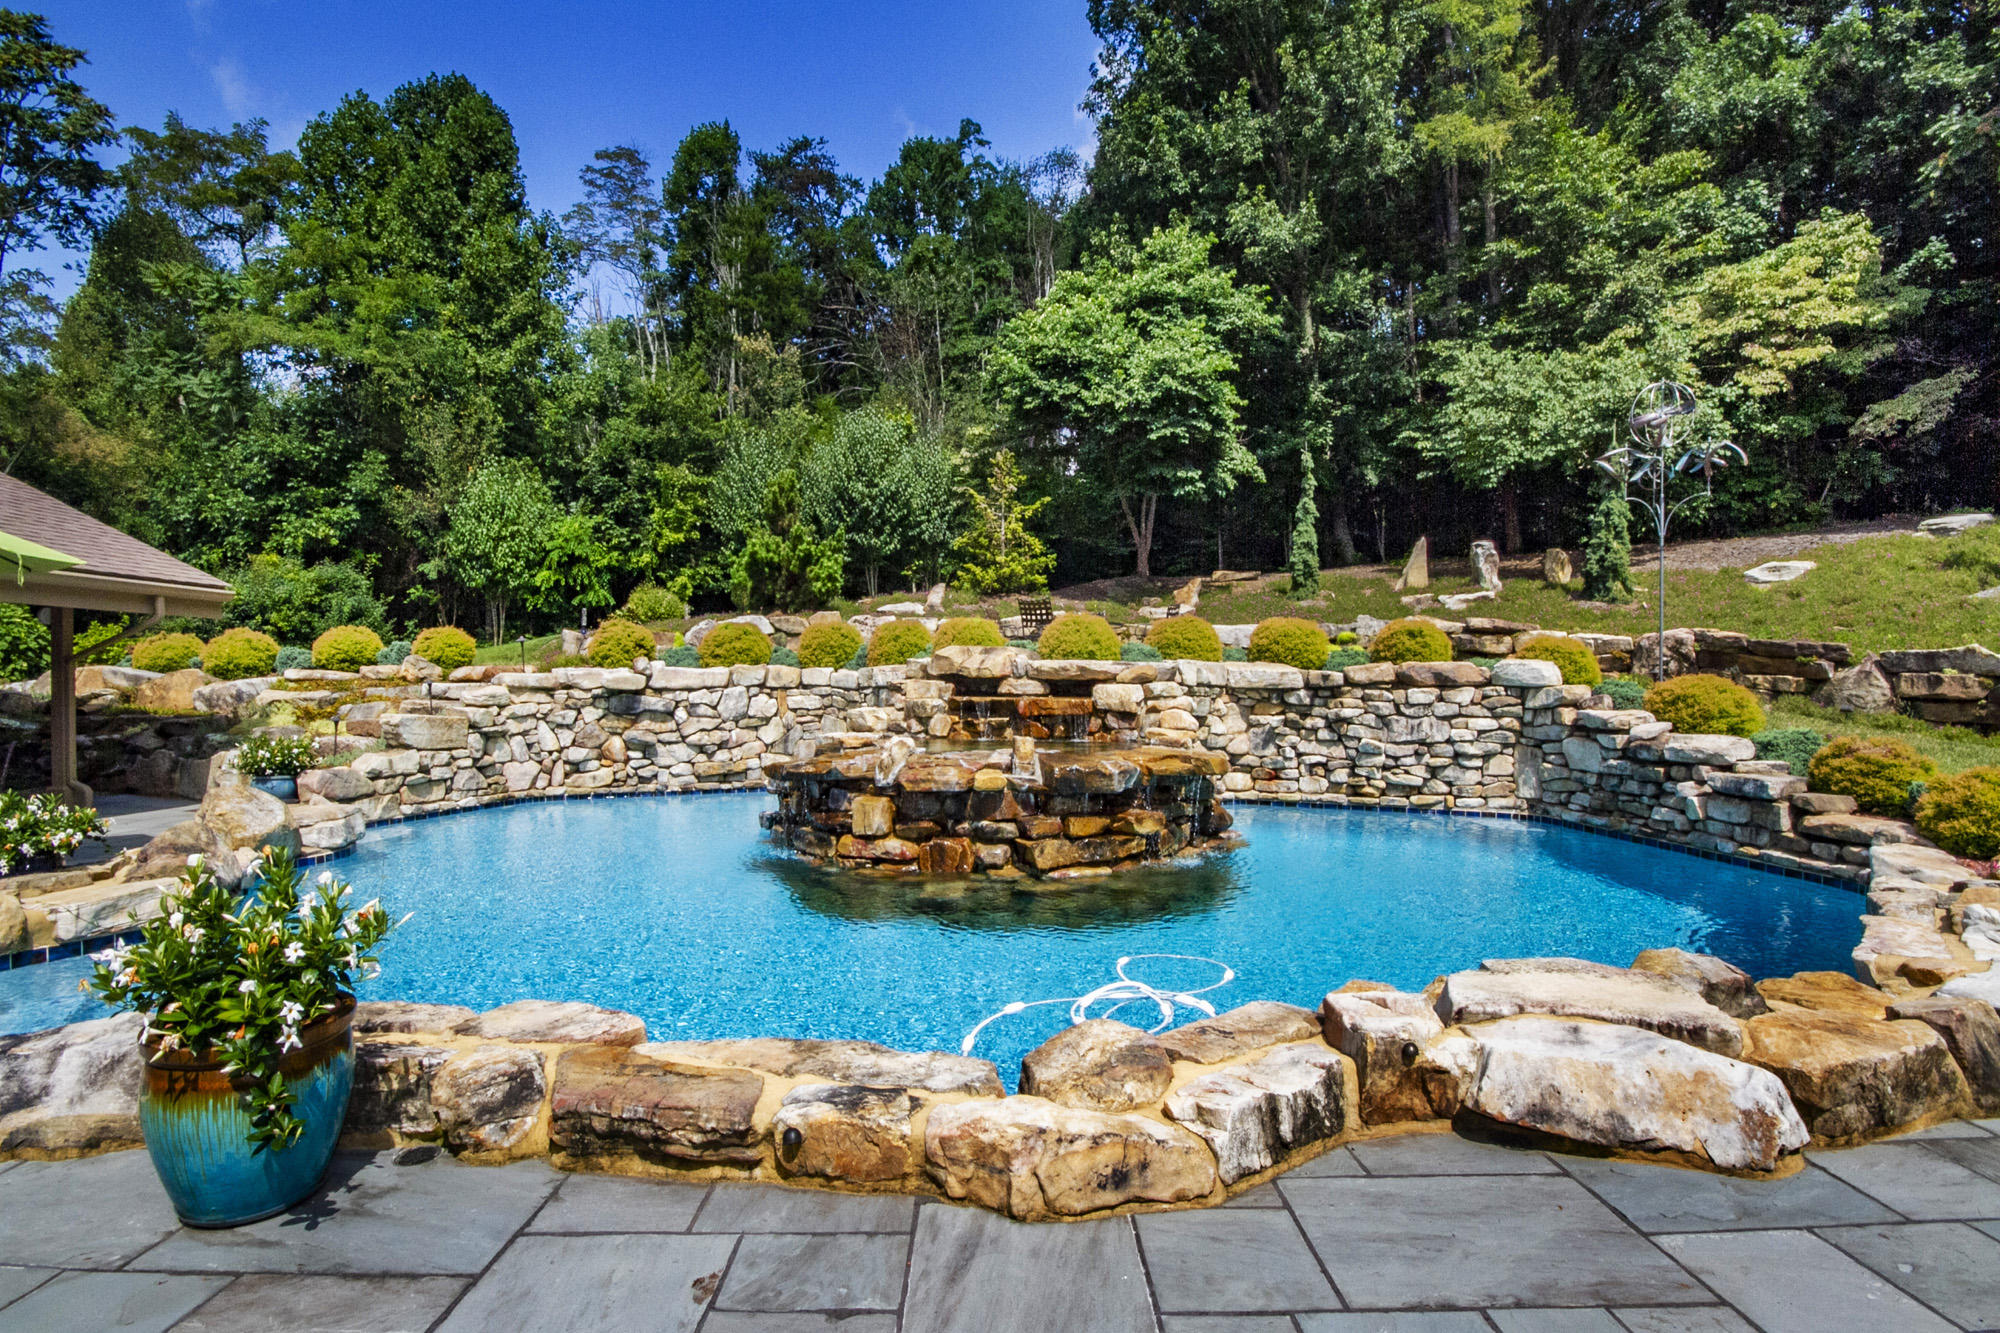 3004 Wineberry Lane, Morristown, Tennessee 37814, 3 Bedrooms Bedrooms, ,4 BathroomsBathrooms,Single Family,For Sale,Wineberry,1090917